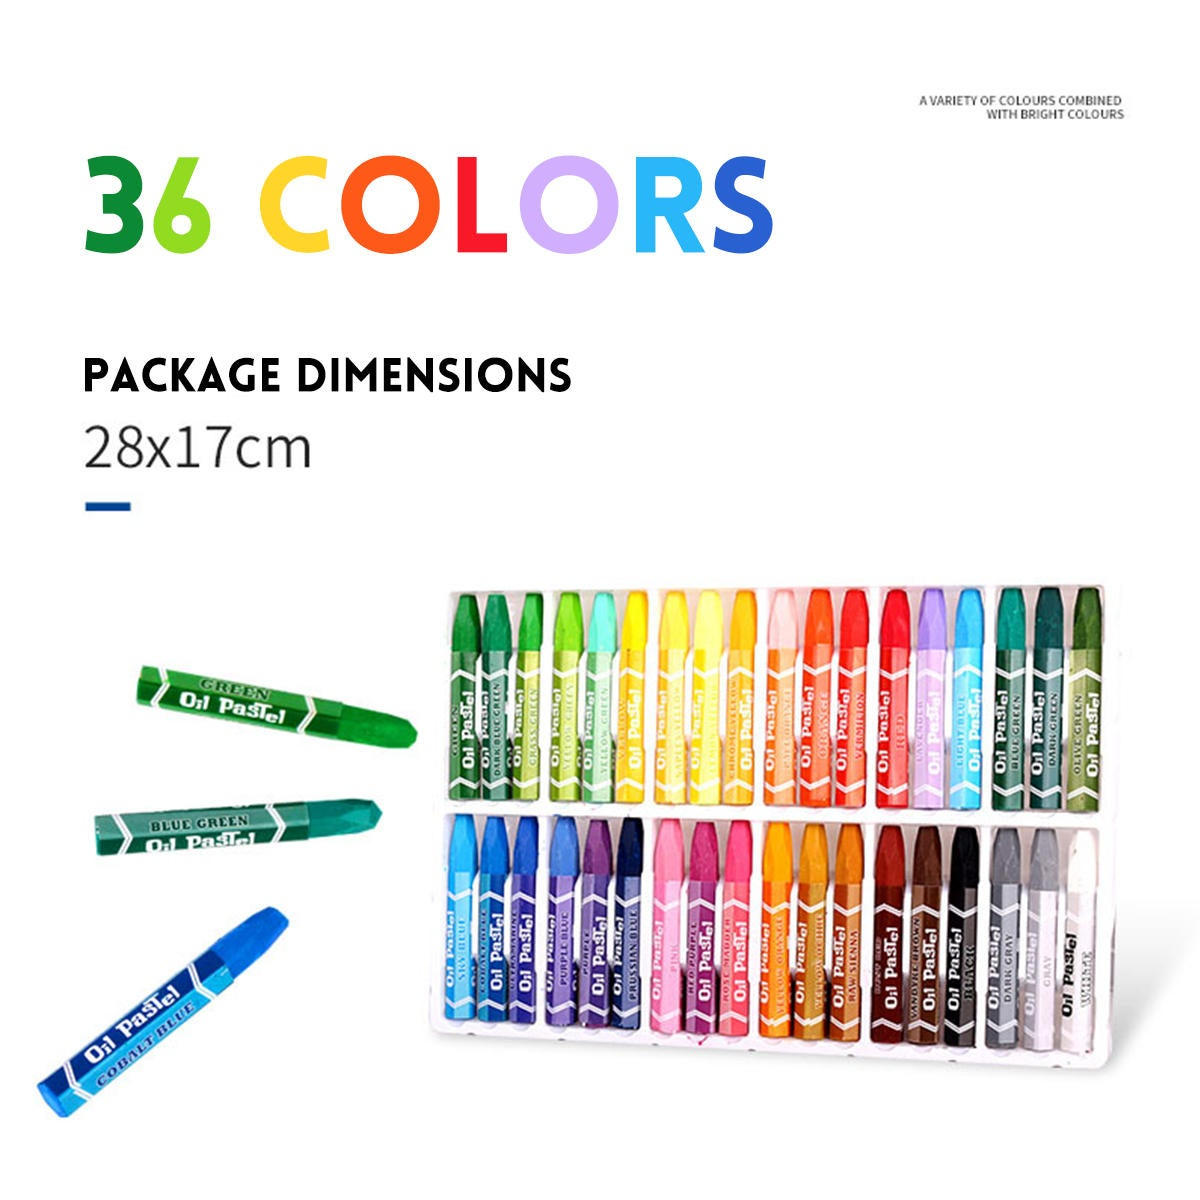 1 set 36 Colors Oil Pastels Non-Toxic Crayon Drawing Painting Pens Artists Students Art Supplies Gifts for Childrens